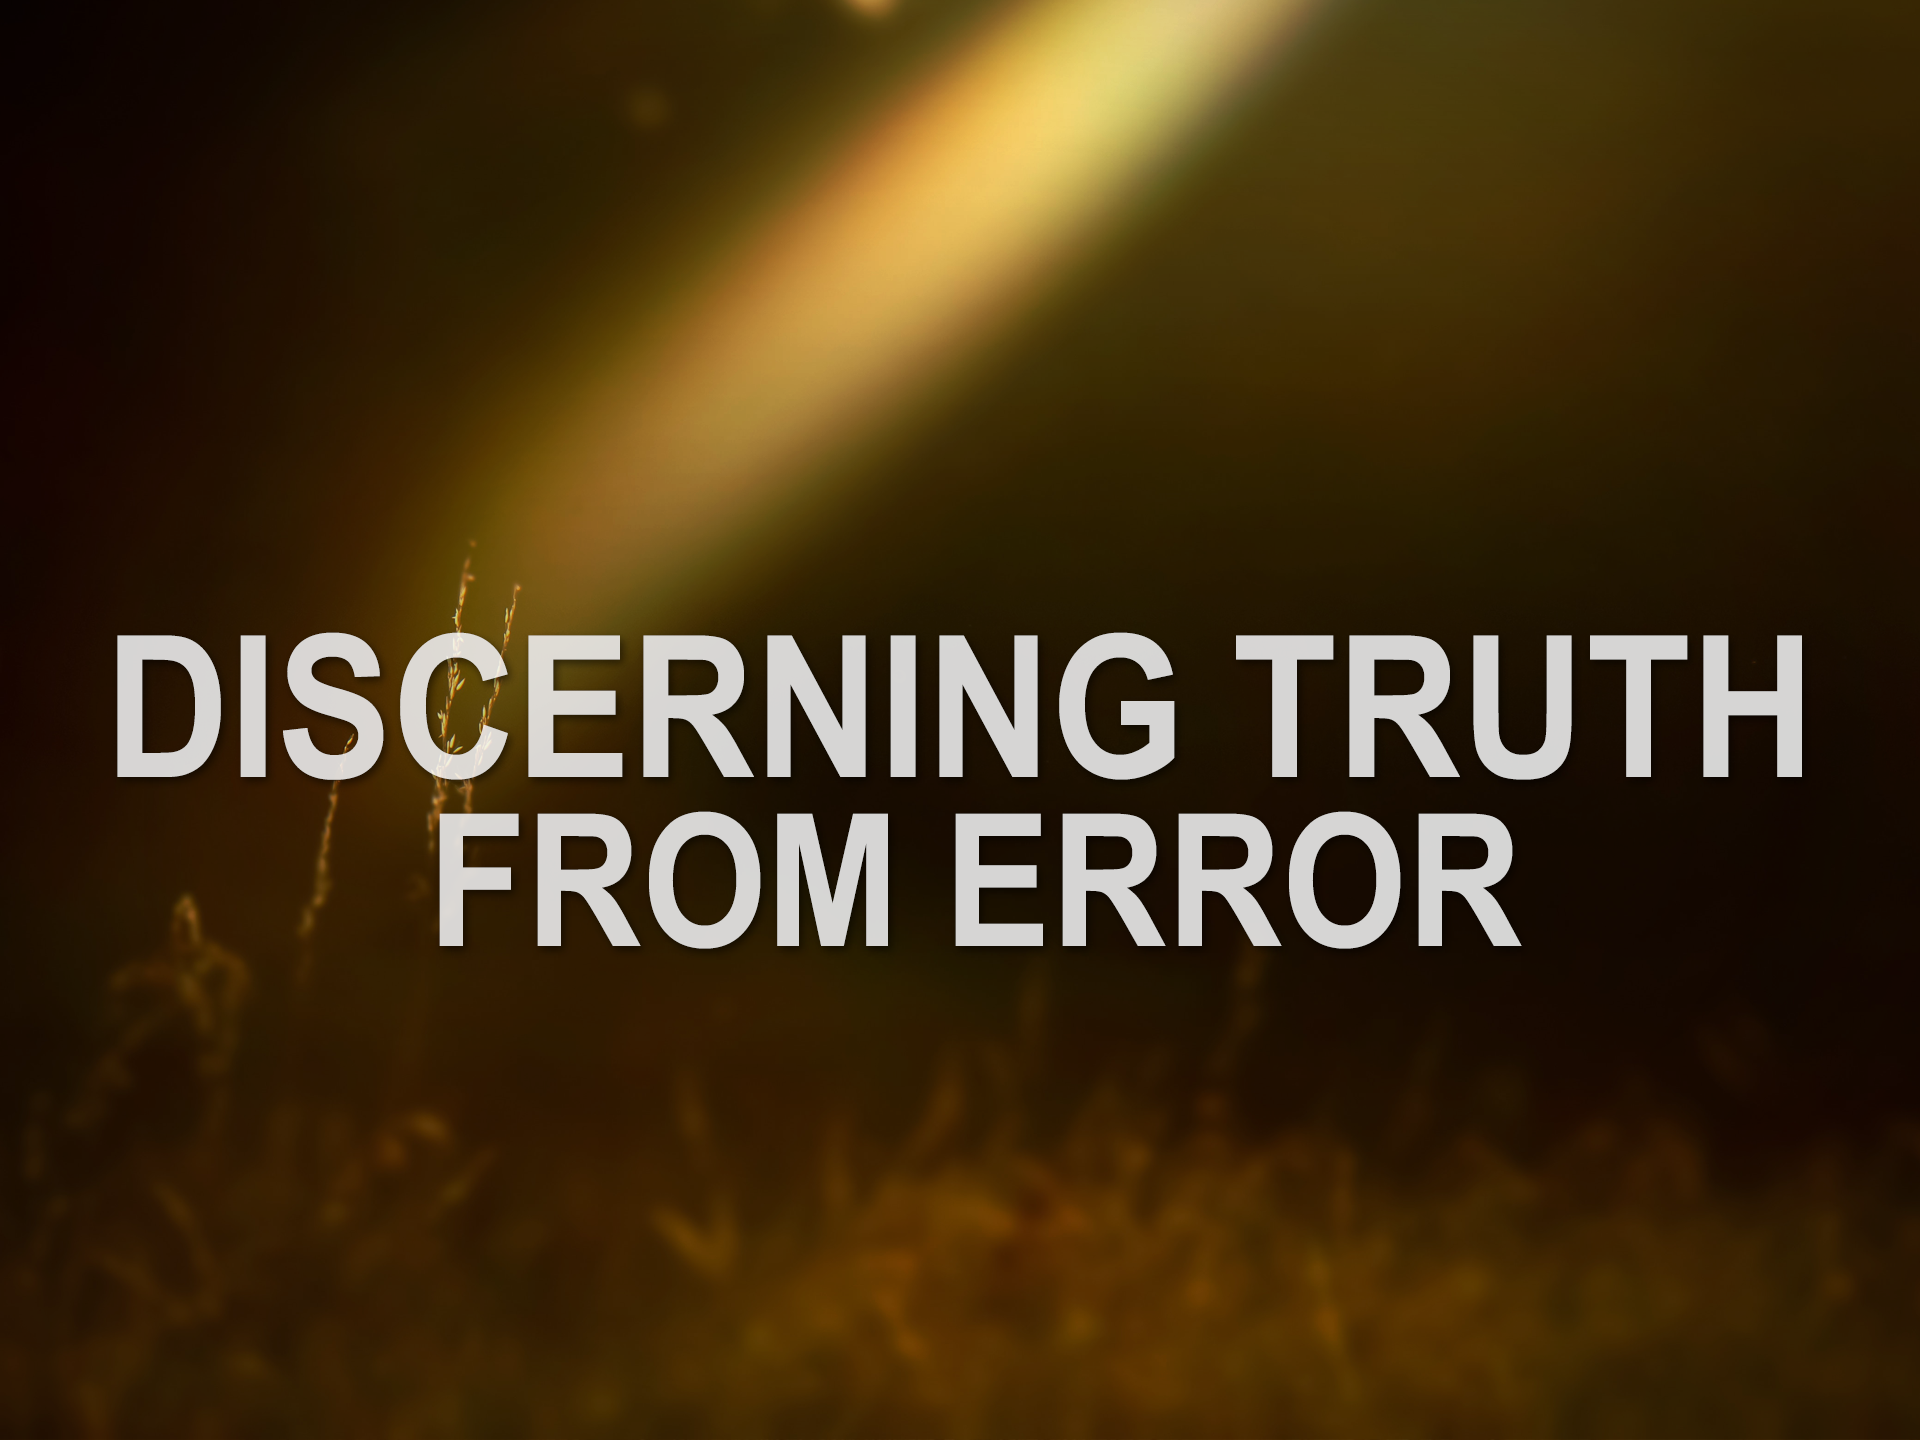 092219 discerning truth from error part 2.png